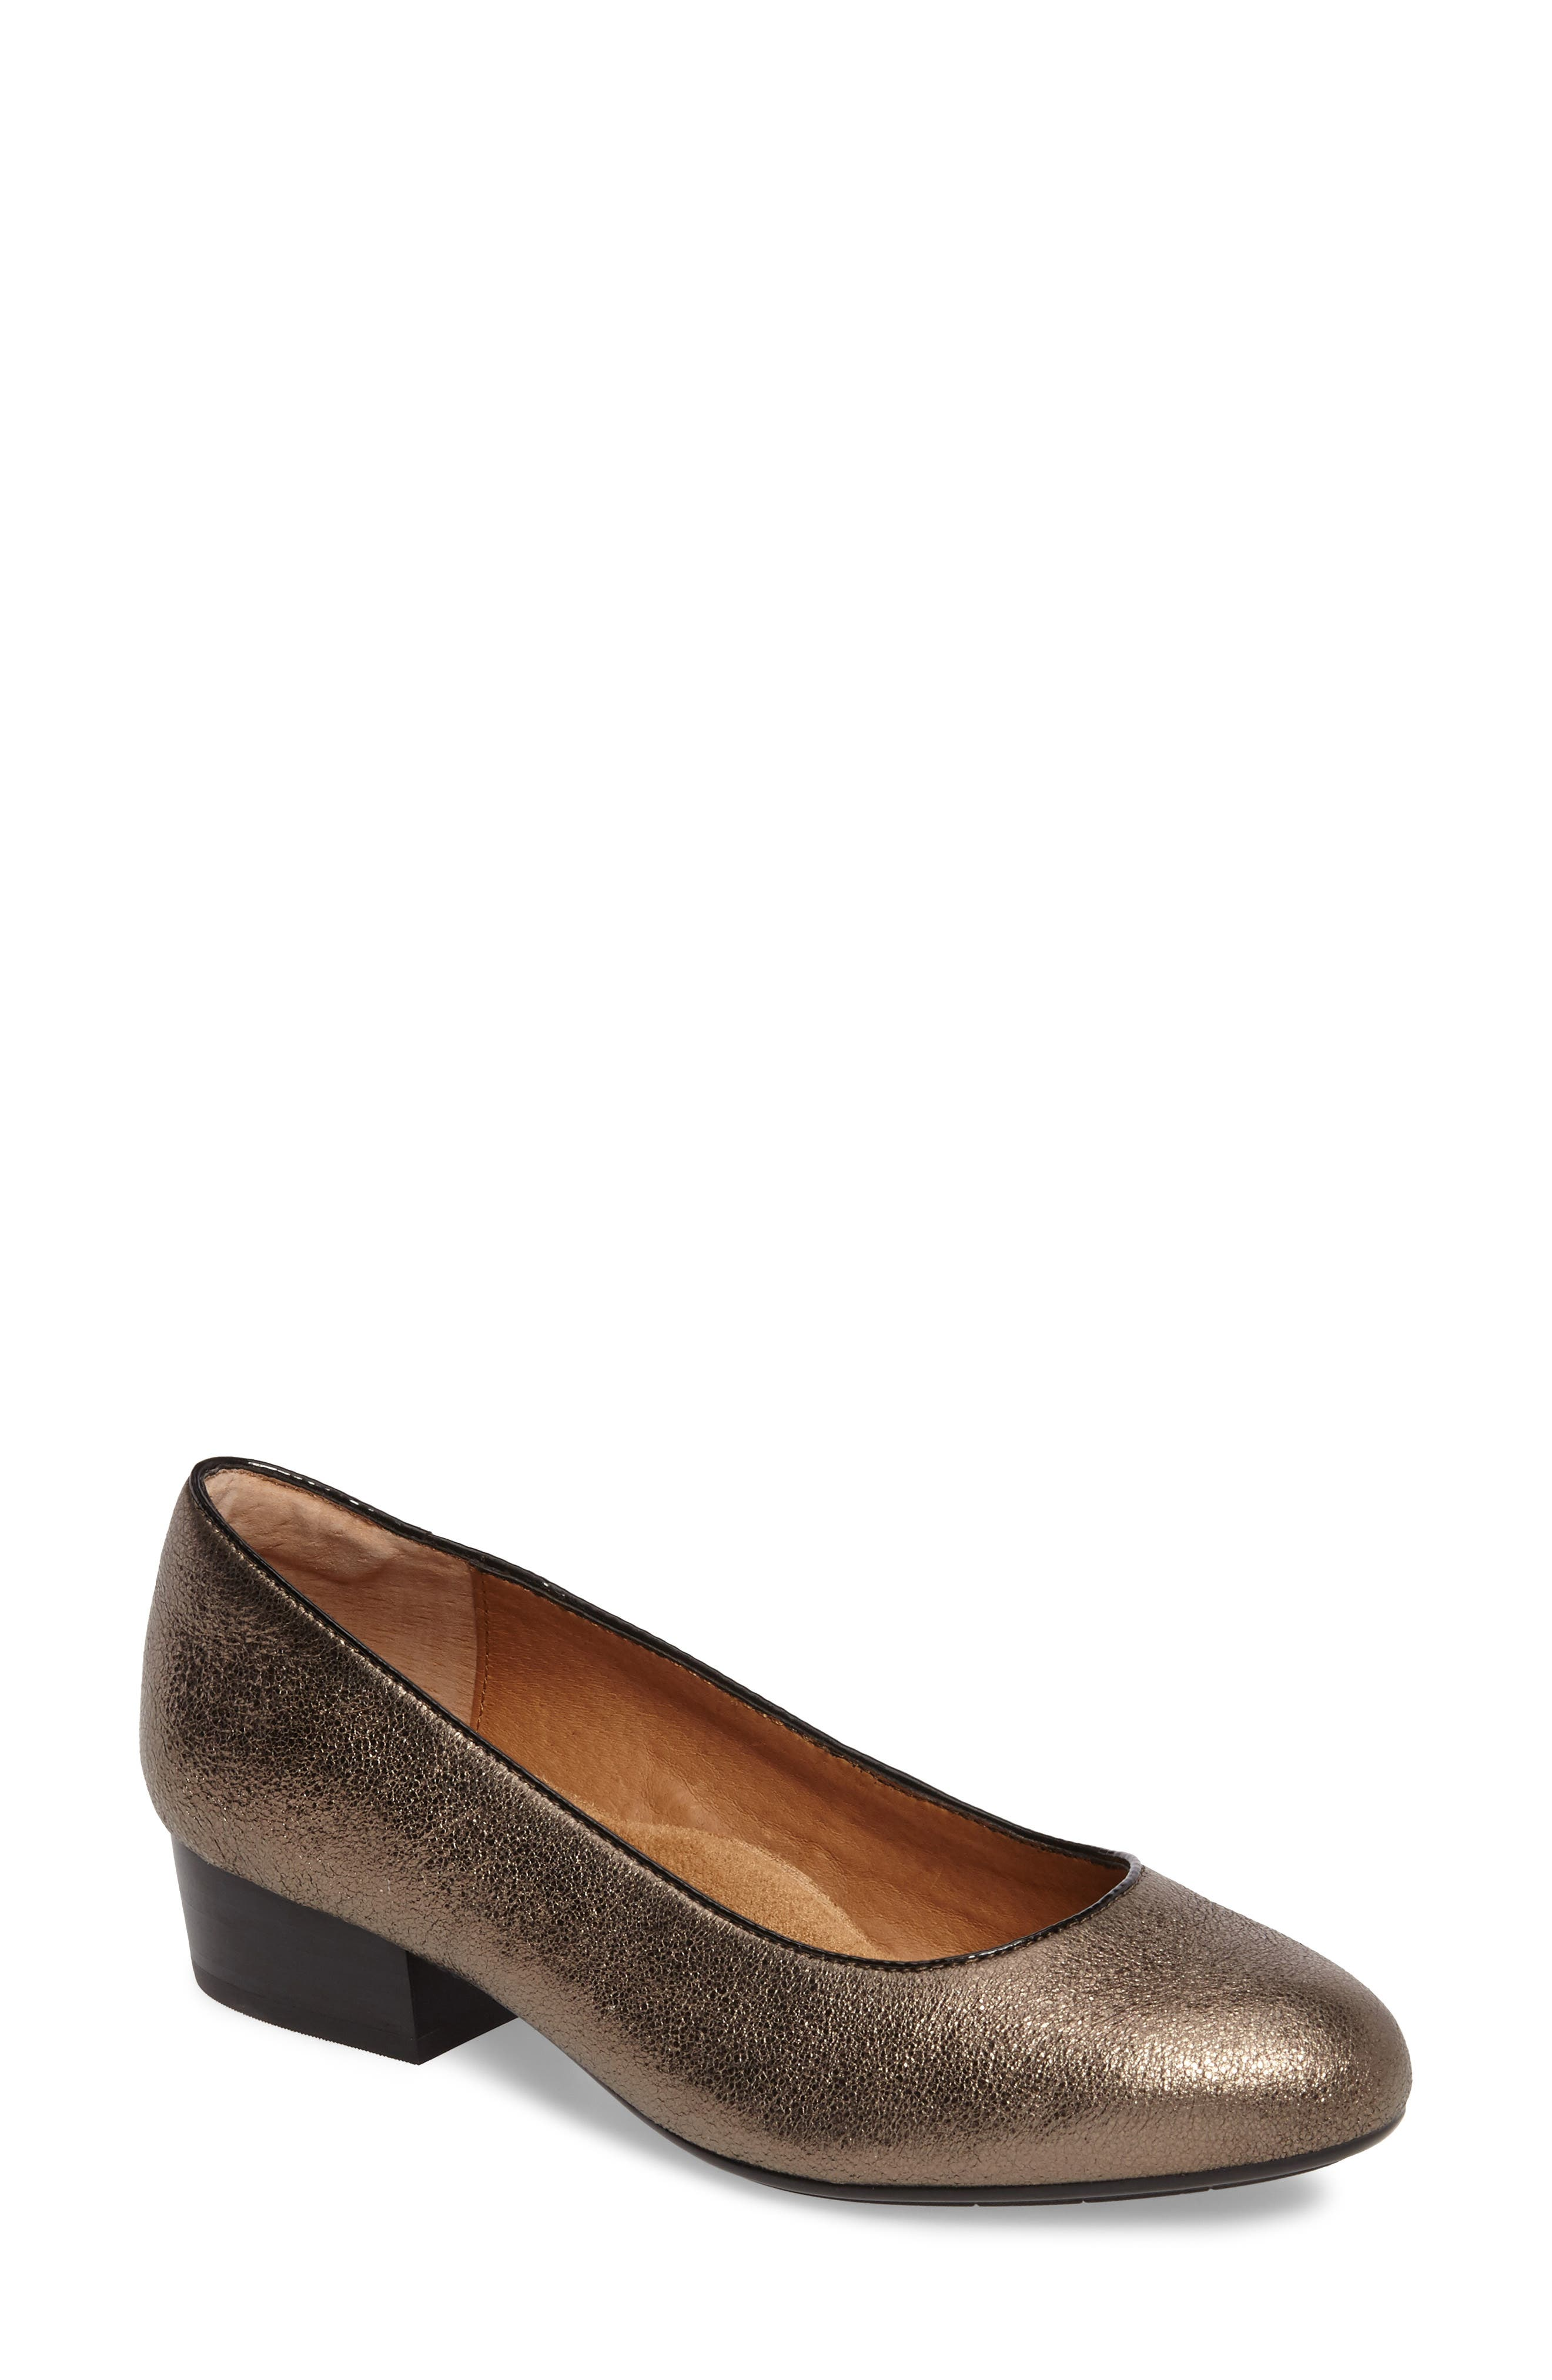 Belicia Pump,                         Main,                         color, COPPER/ BLACK LEATHER